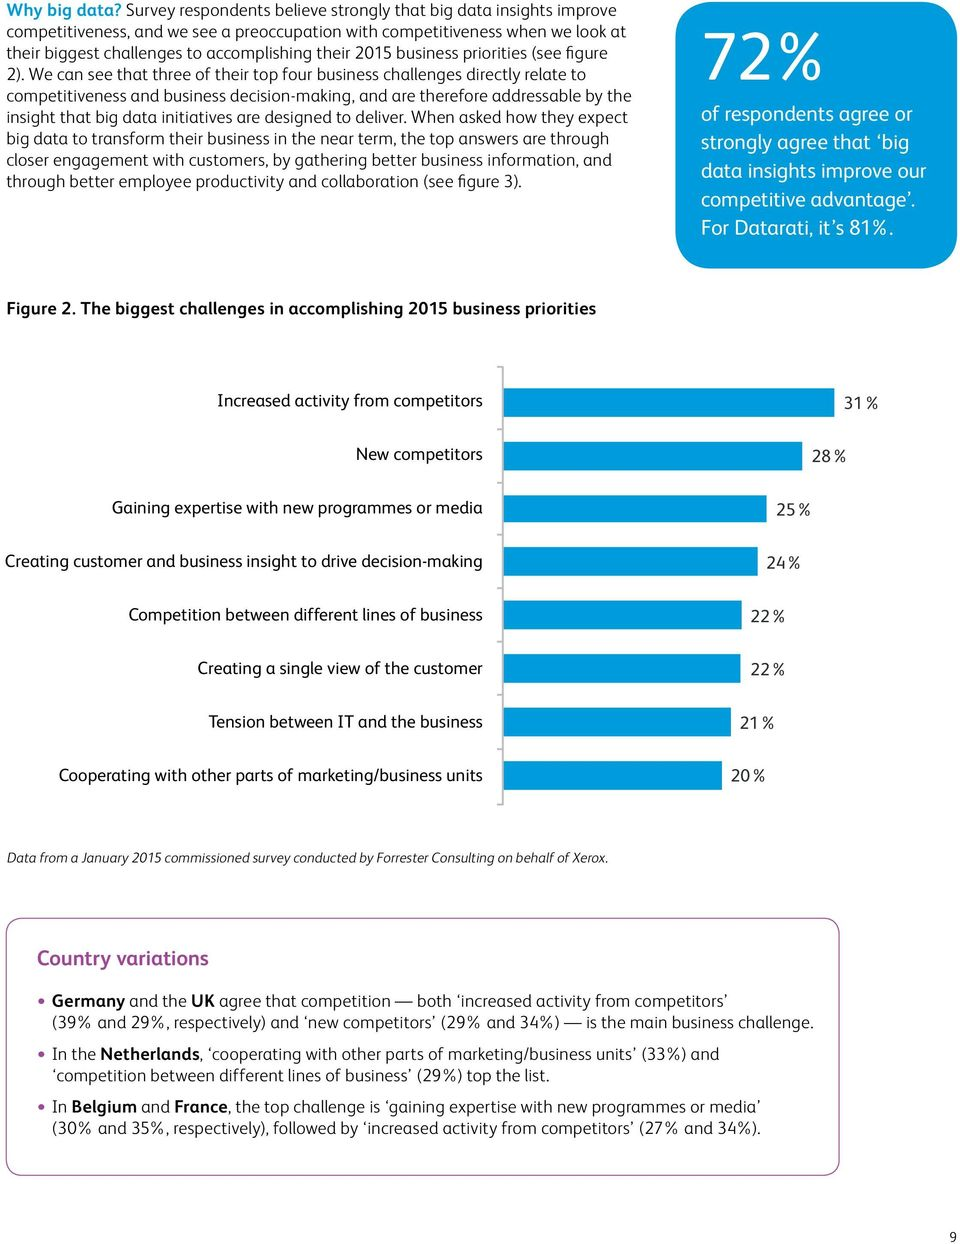 challenges to accomplishing their 2015 business priorities (see figure 2).